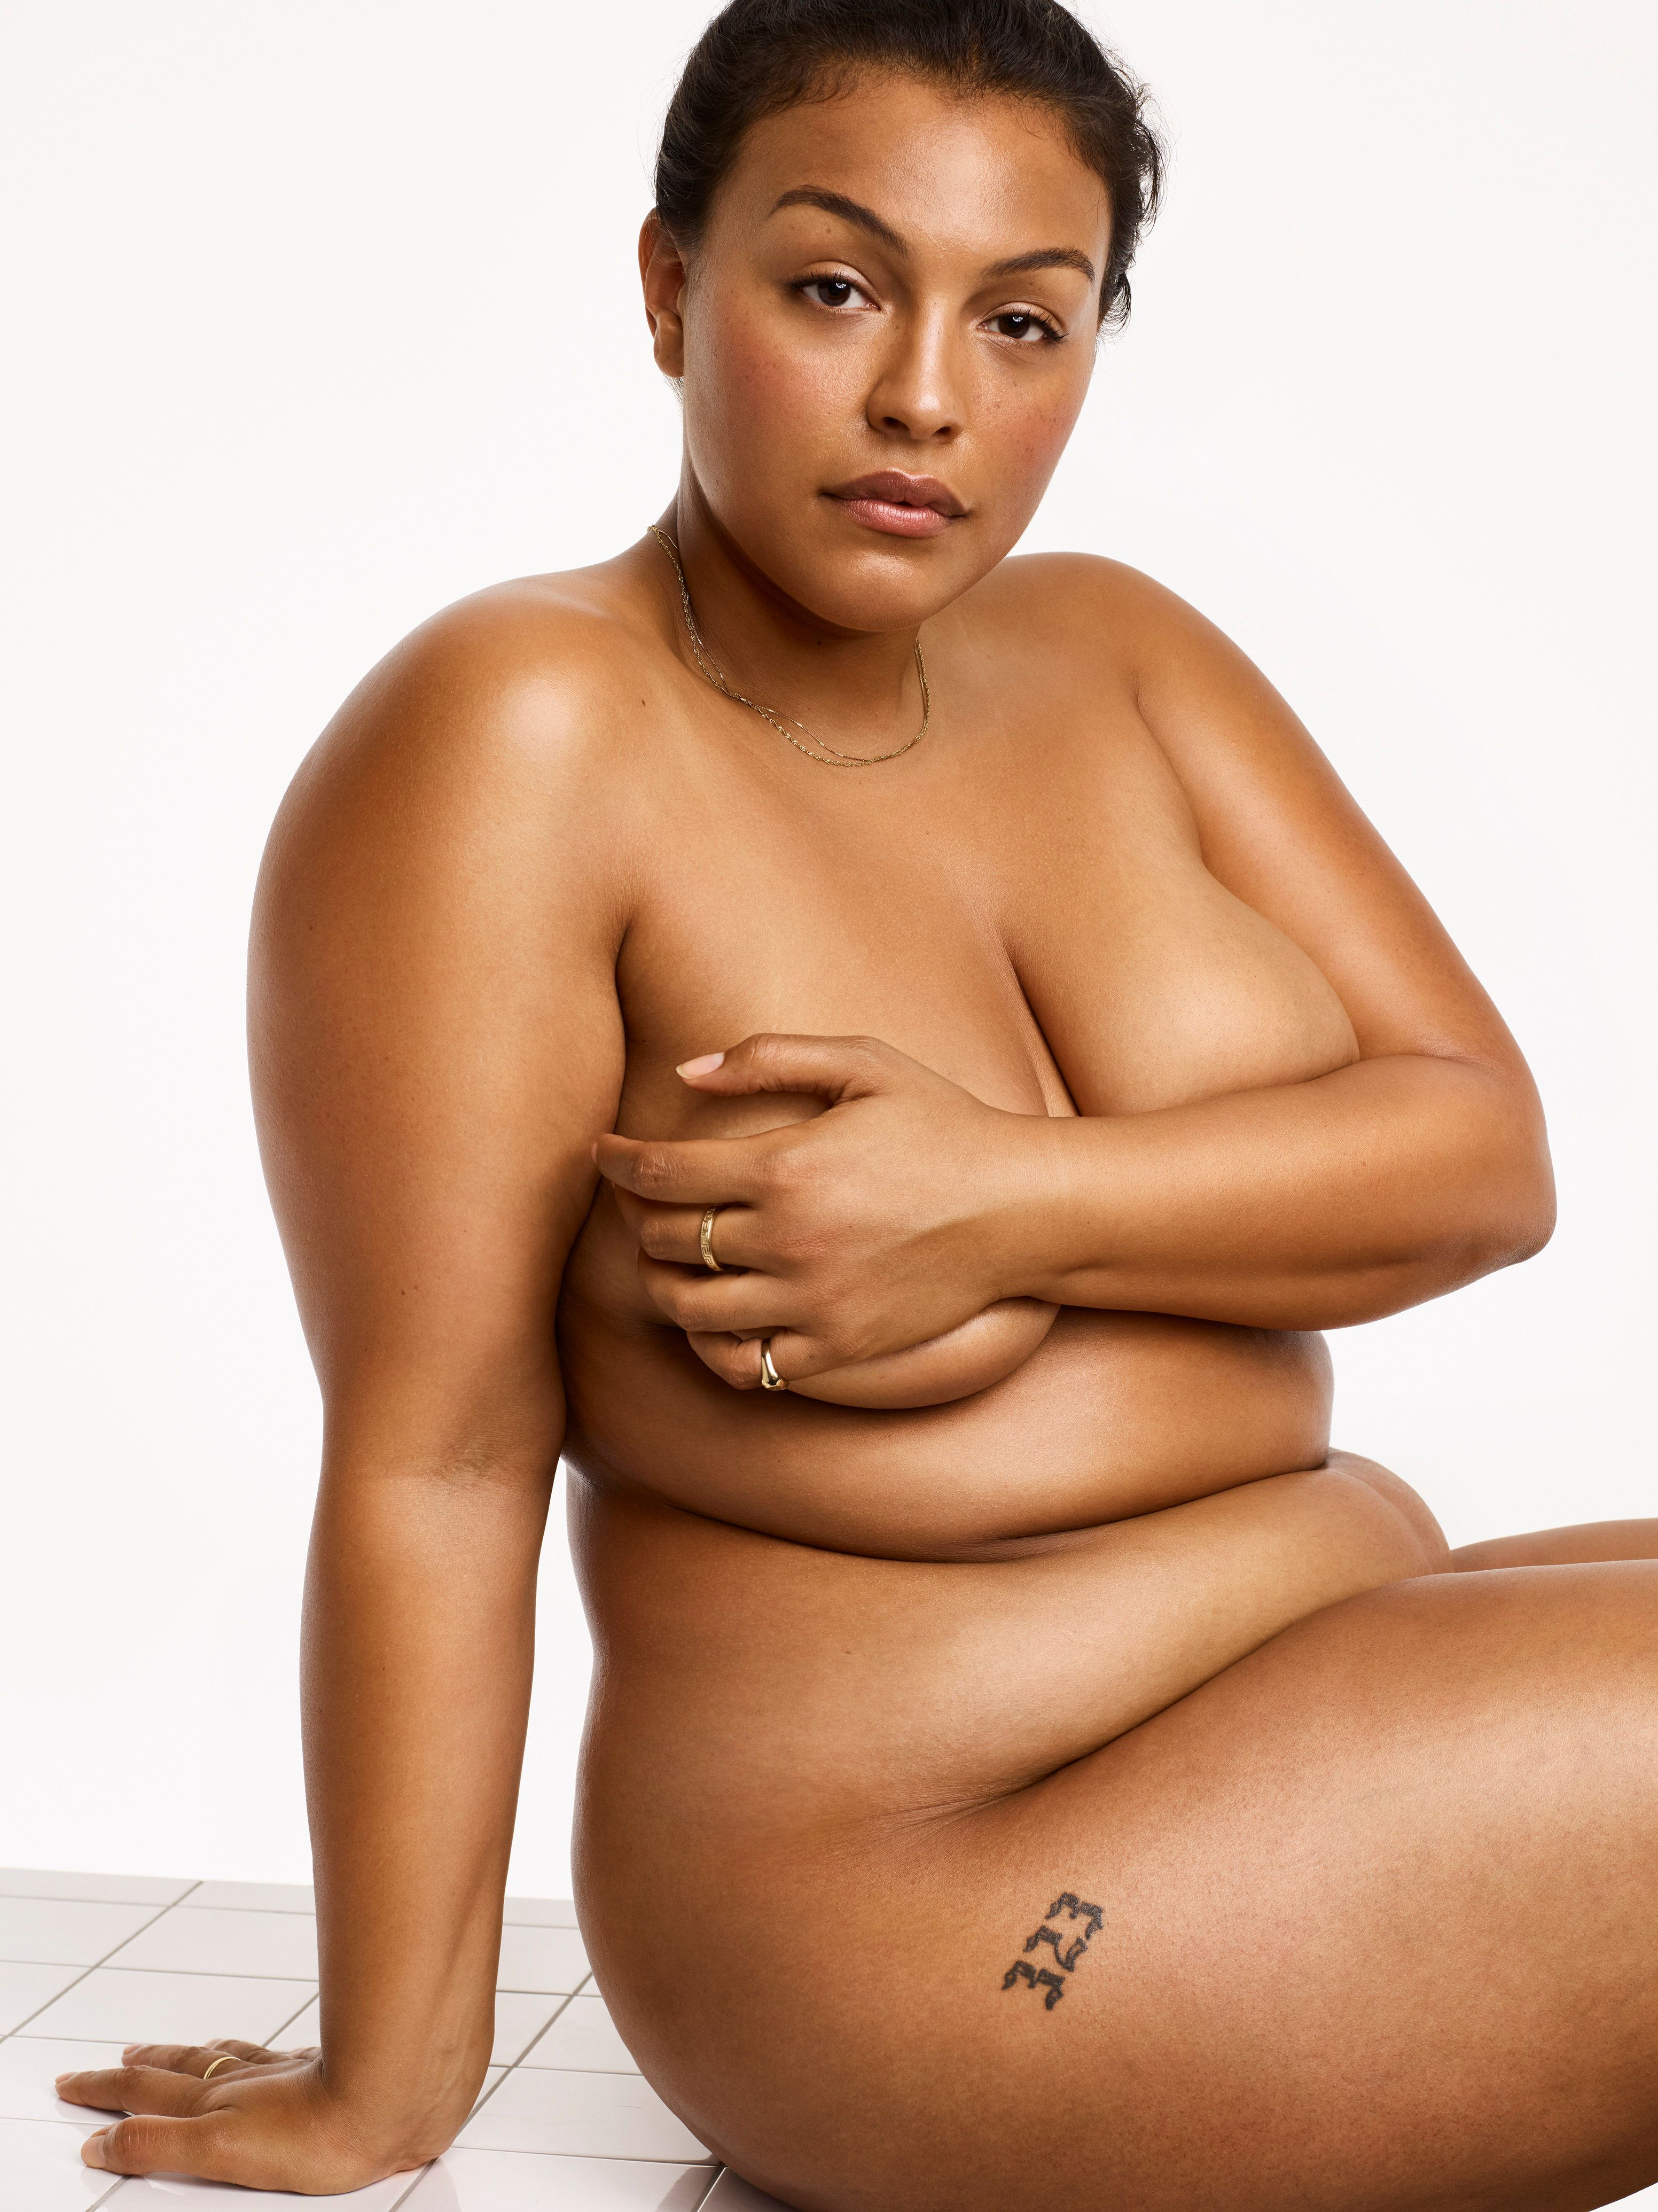 """Elesser starred in the <a href=""""http://www.huffingtonpost.com/entry/nike-plus-size-model-sports-bra_us_5788fffbe4b0867123e0ec10"""">landmark Nike ad</a> that finally acknowledged curvy women work out, too."""